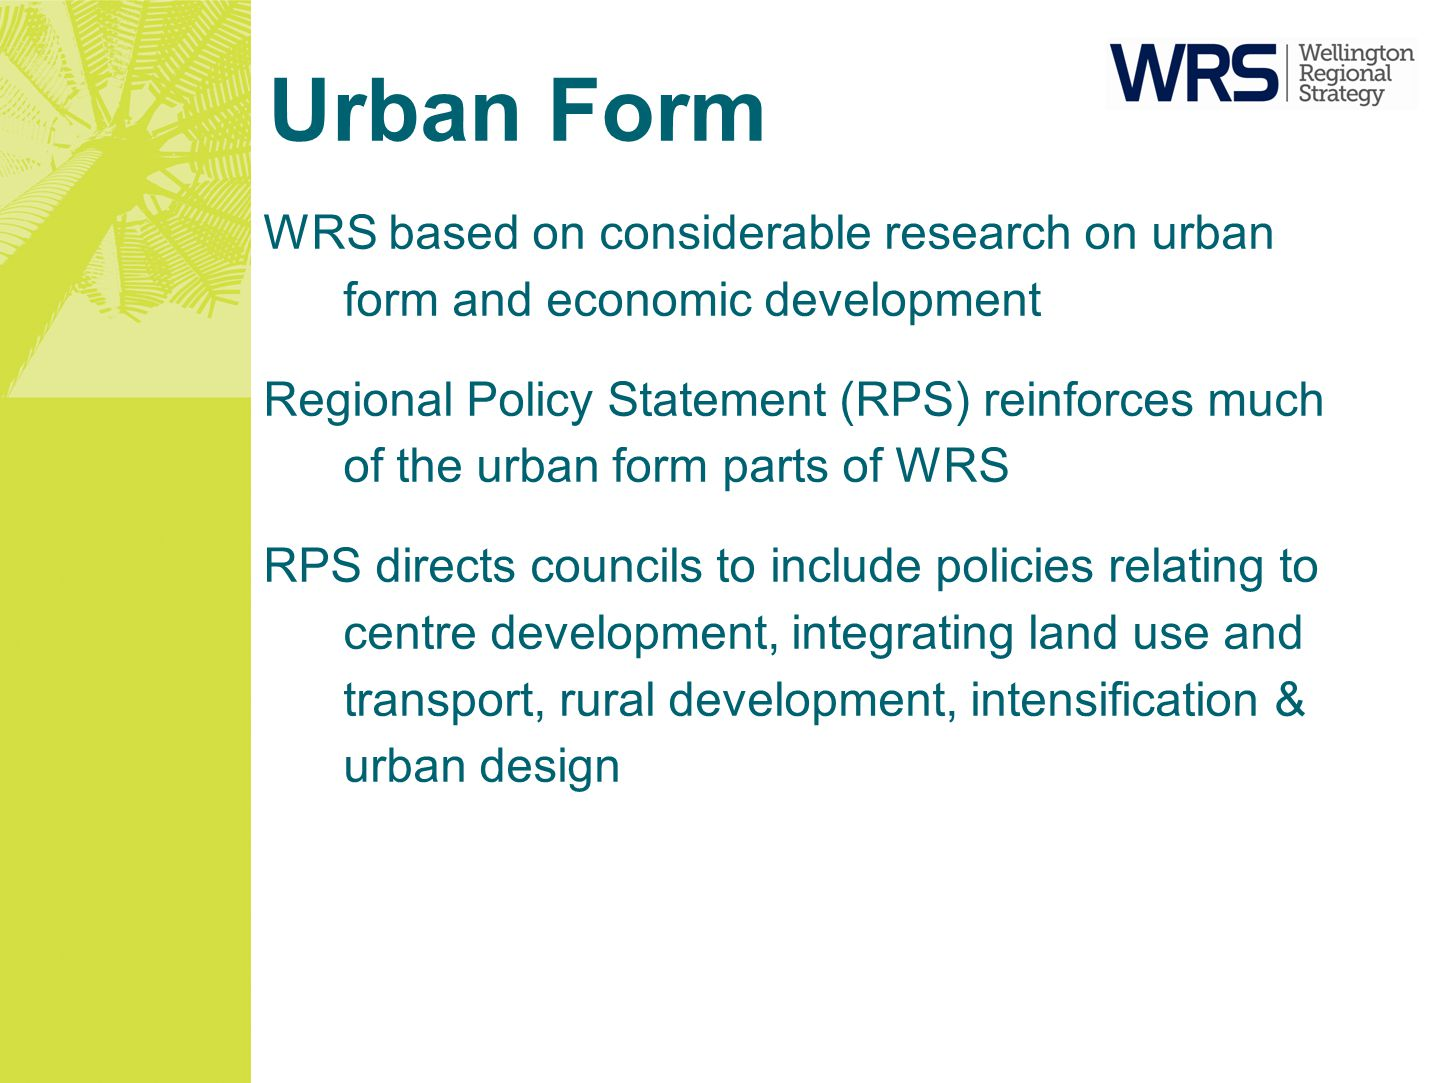 Urban Form WRS based on considerable research on urban form and economic development Regional Policy Statement (RPS) reinforces much of the urban form parts of WRS RPS directs councils to include policies relating to centre development, integrating land use and transport, rural development, intensification & urban design